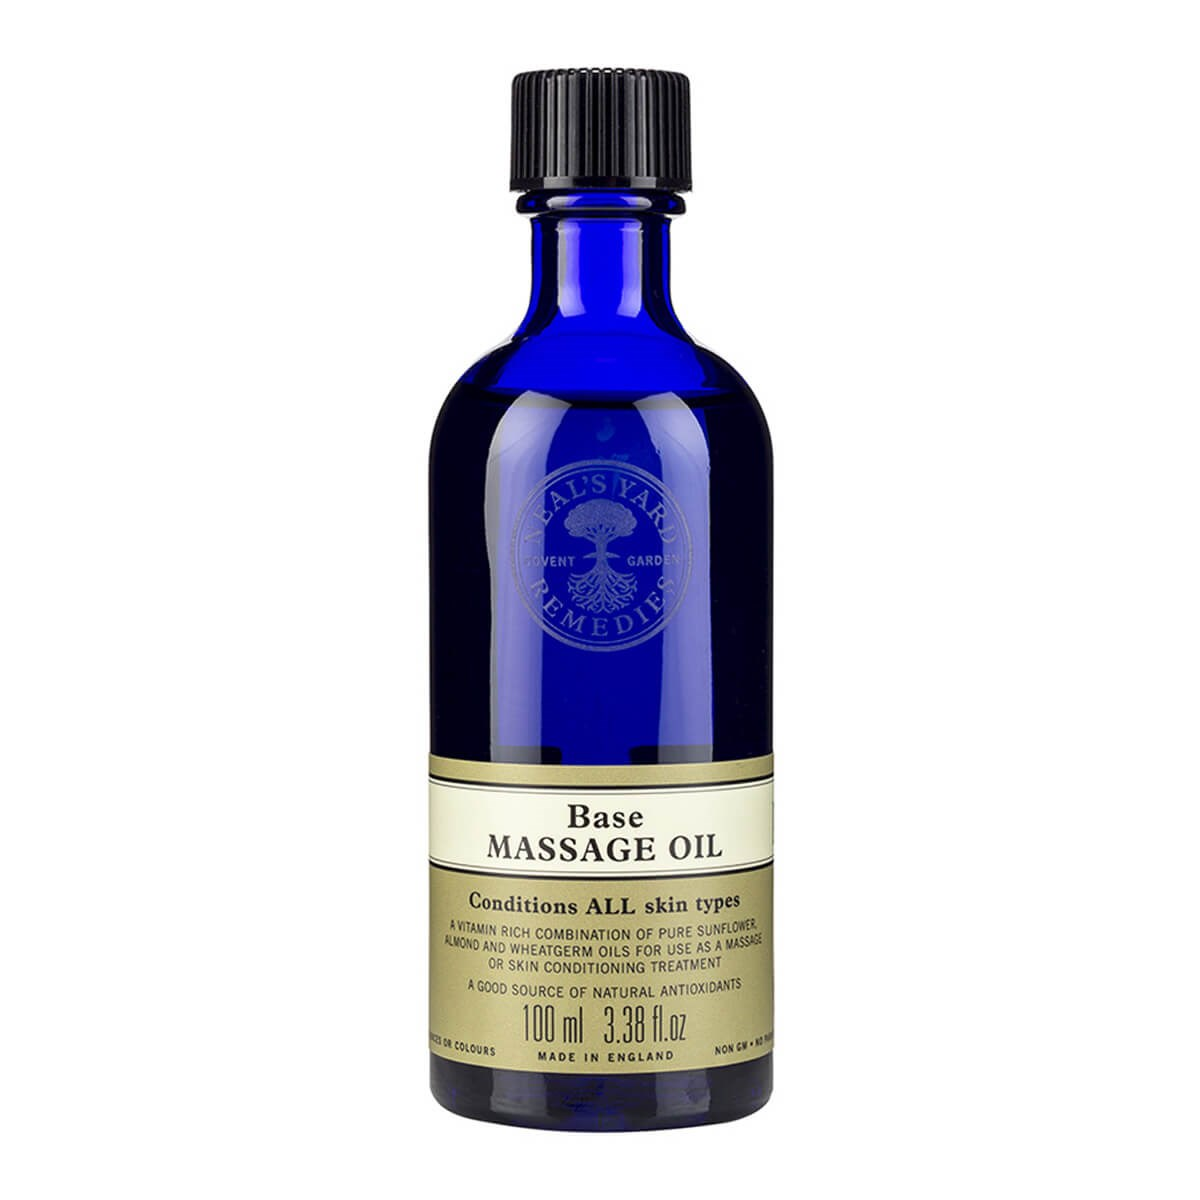 Neal's Yard Remedies Base Massage Oil